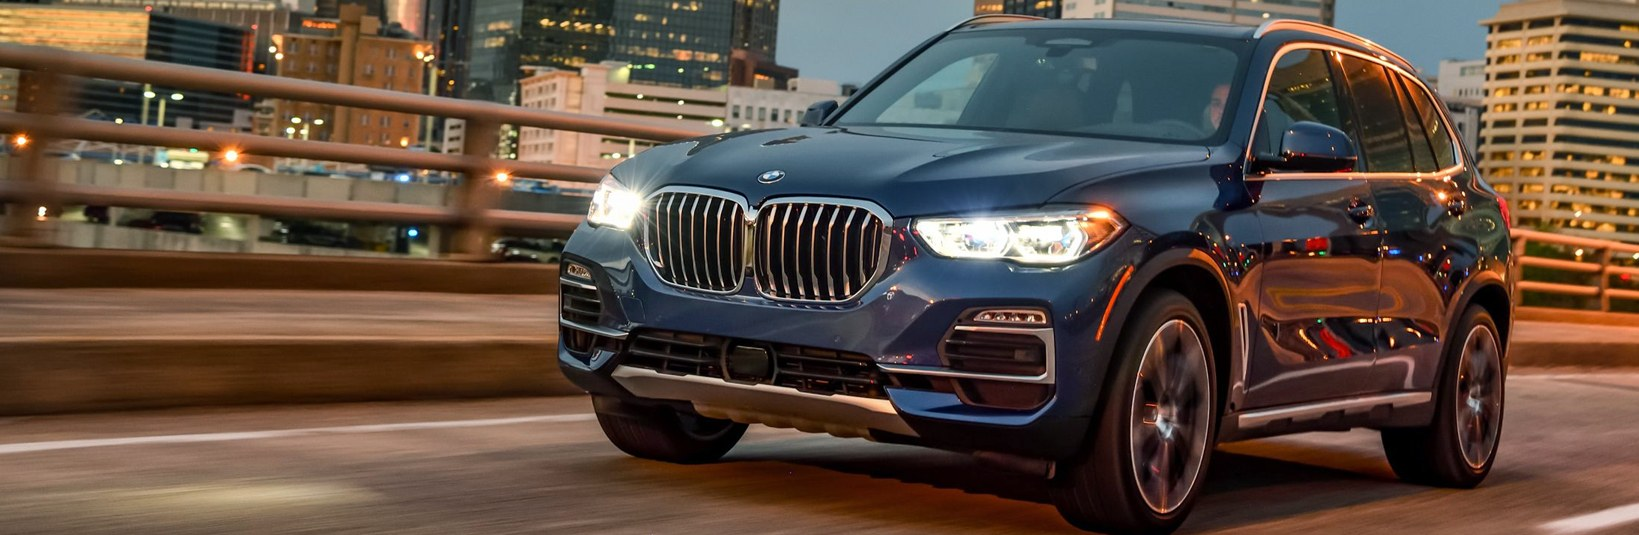 The All-New 2019 BMW X5: The